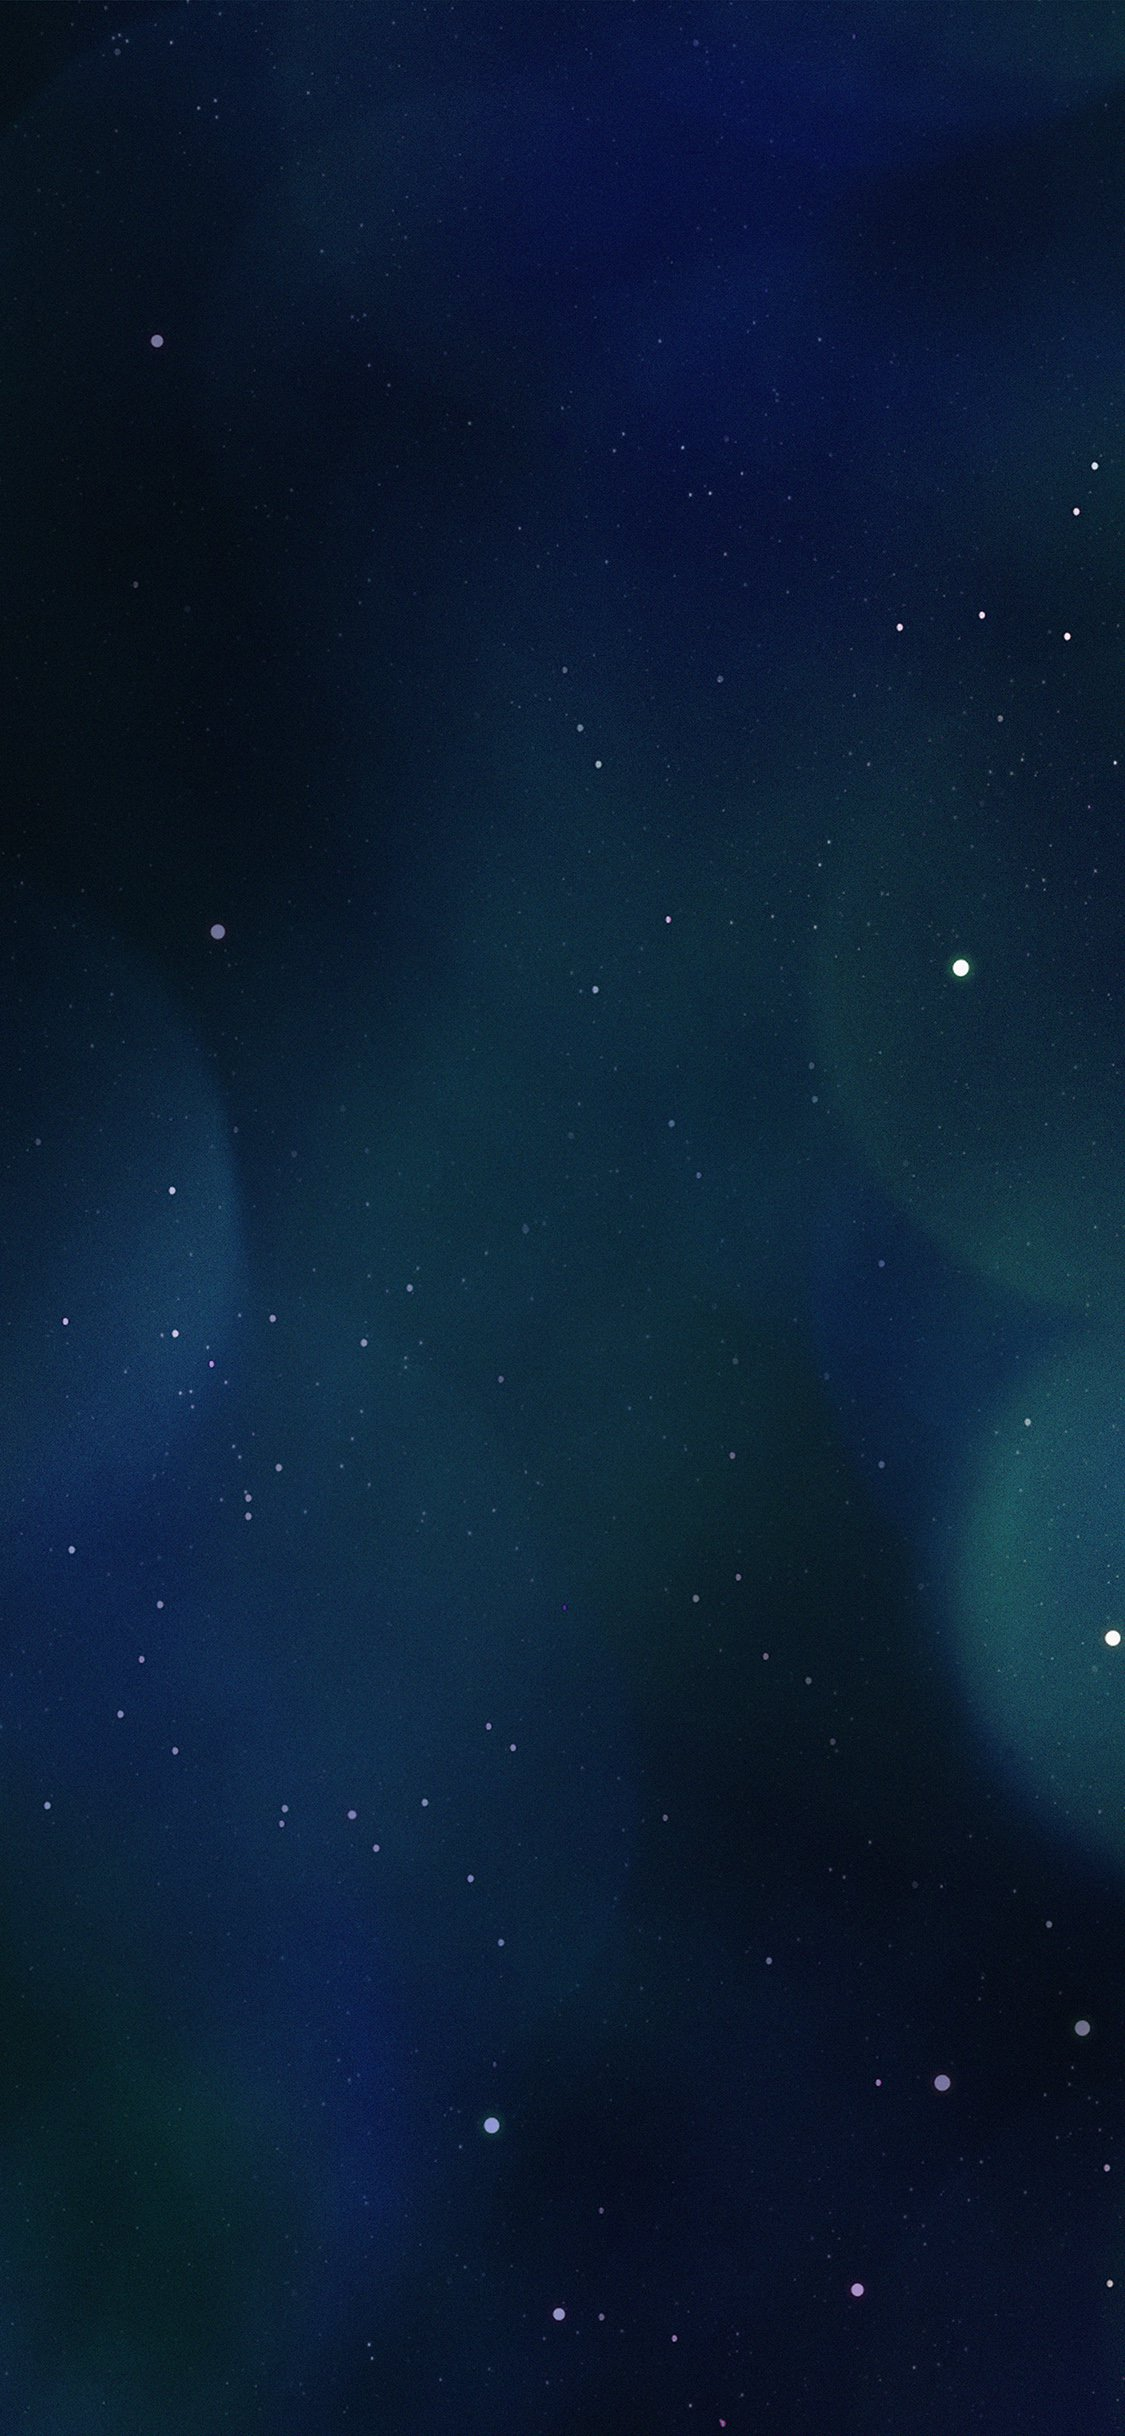 Space Blue Flare Art Iphone Wallpapers Free Download